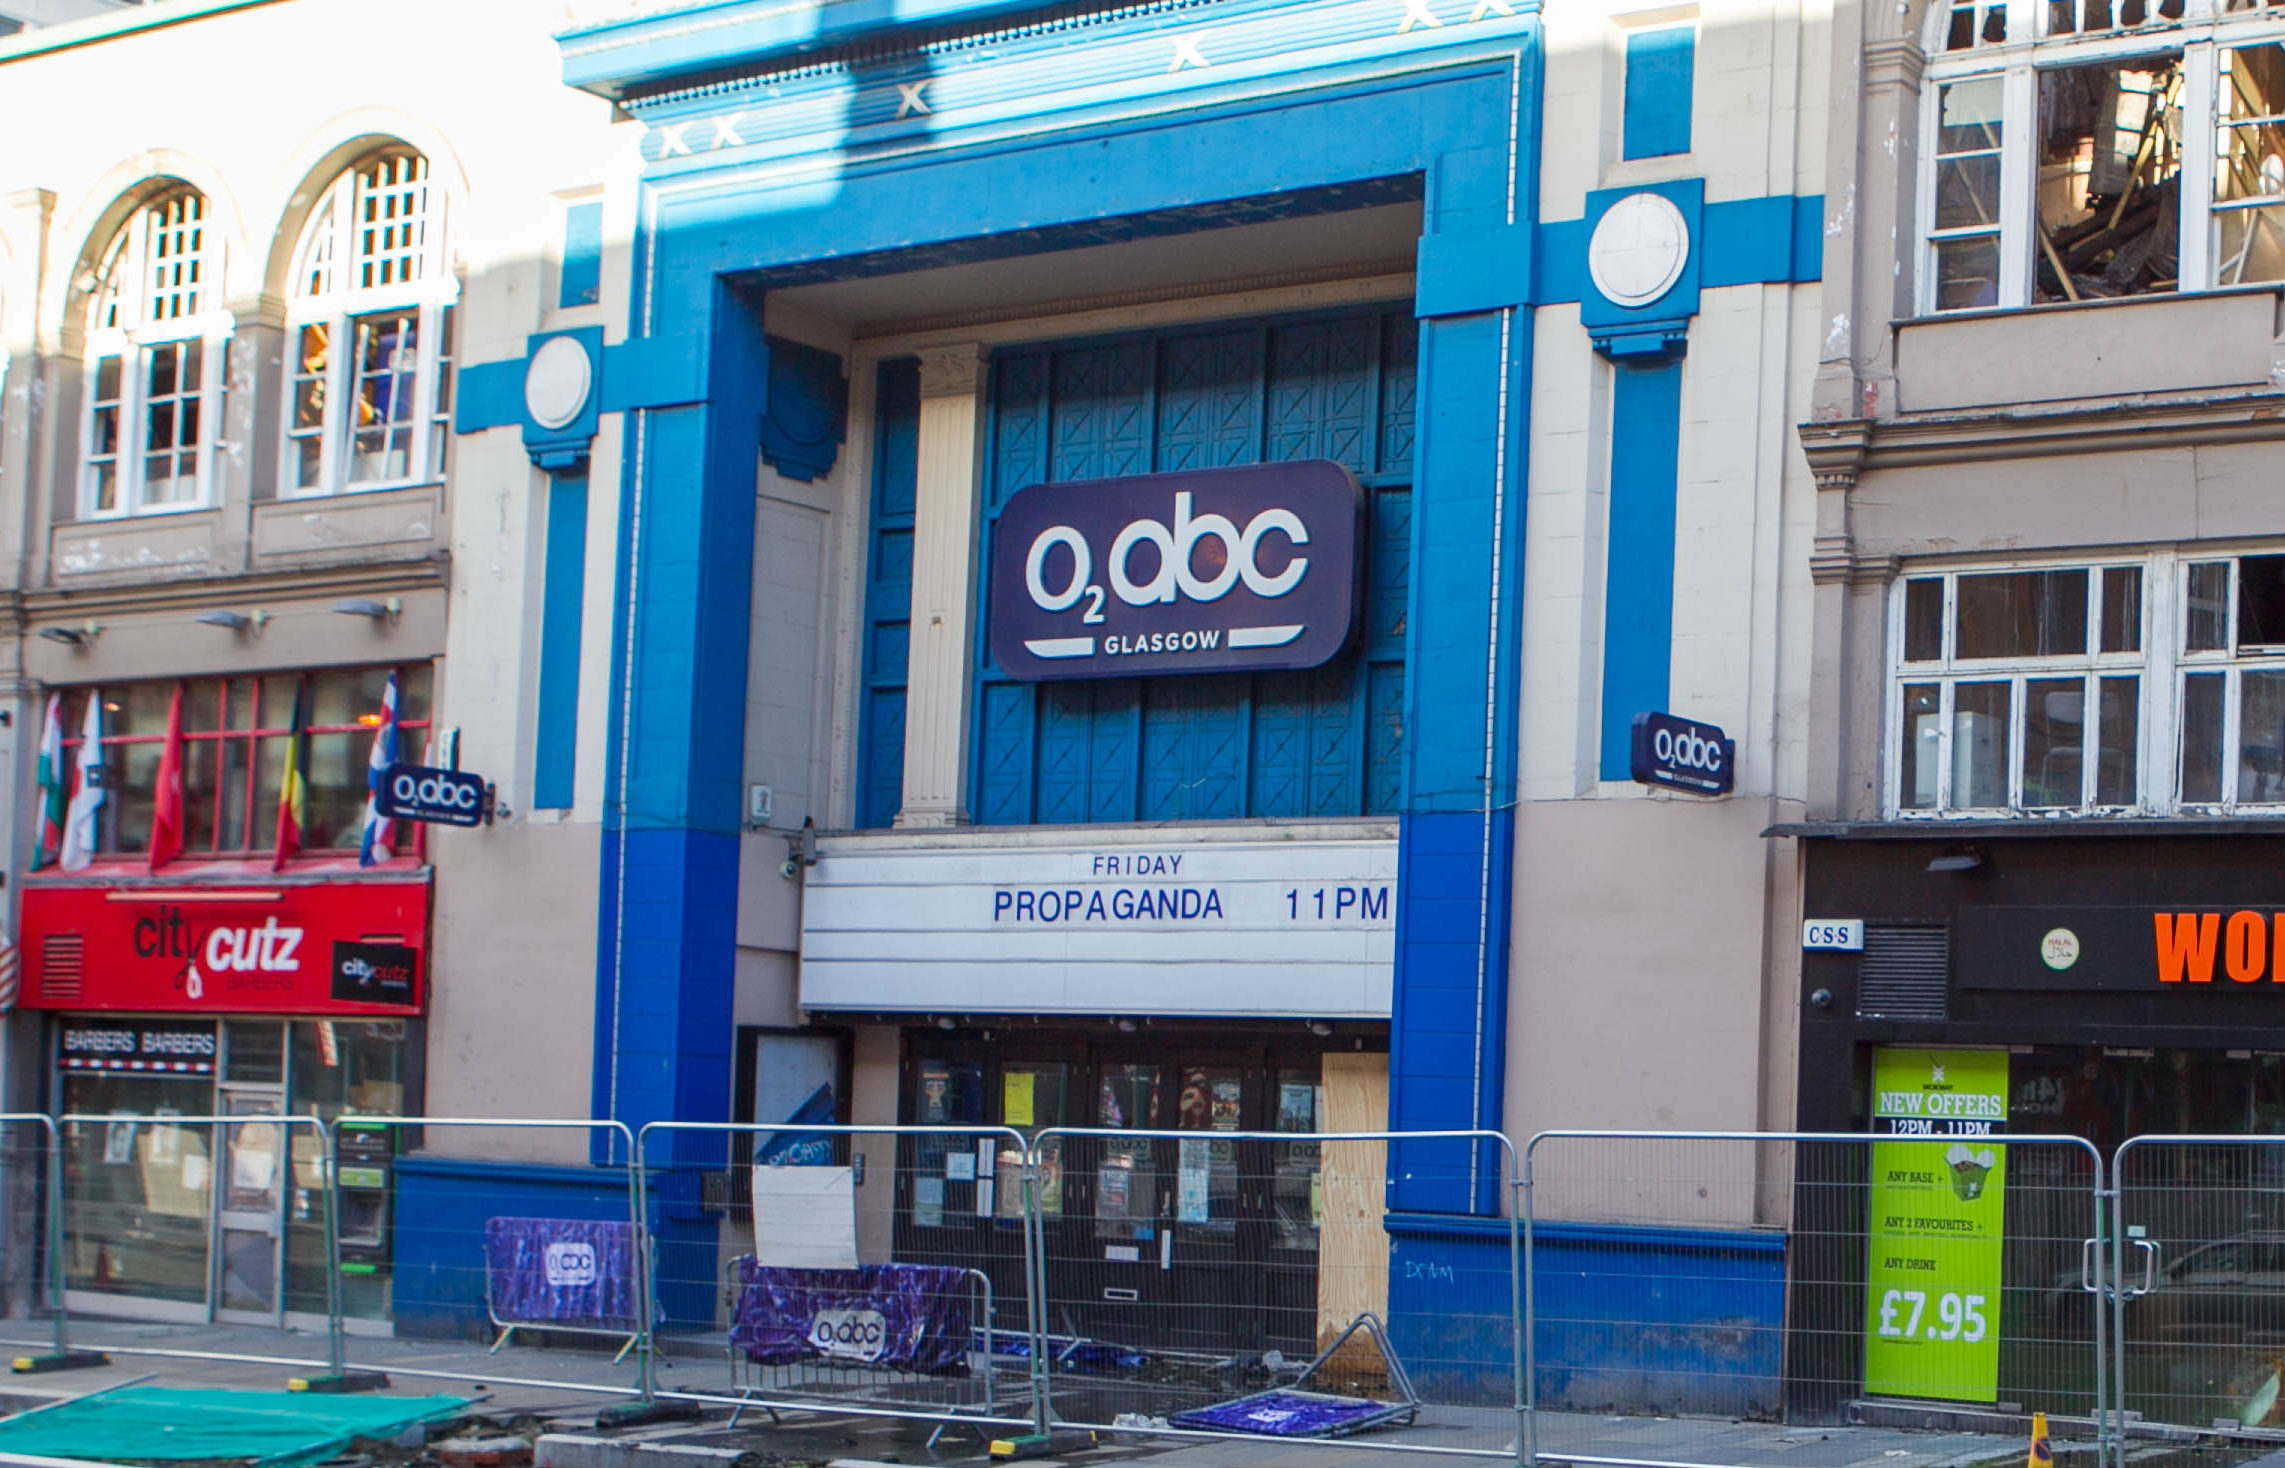 The O2 ABC in Glasgow after the fire (Chris Austin / DCT Media)